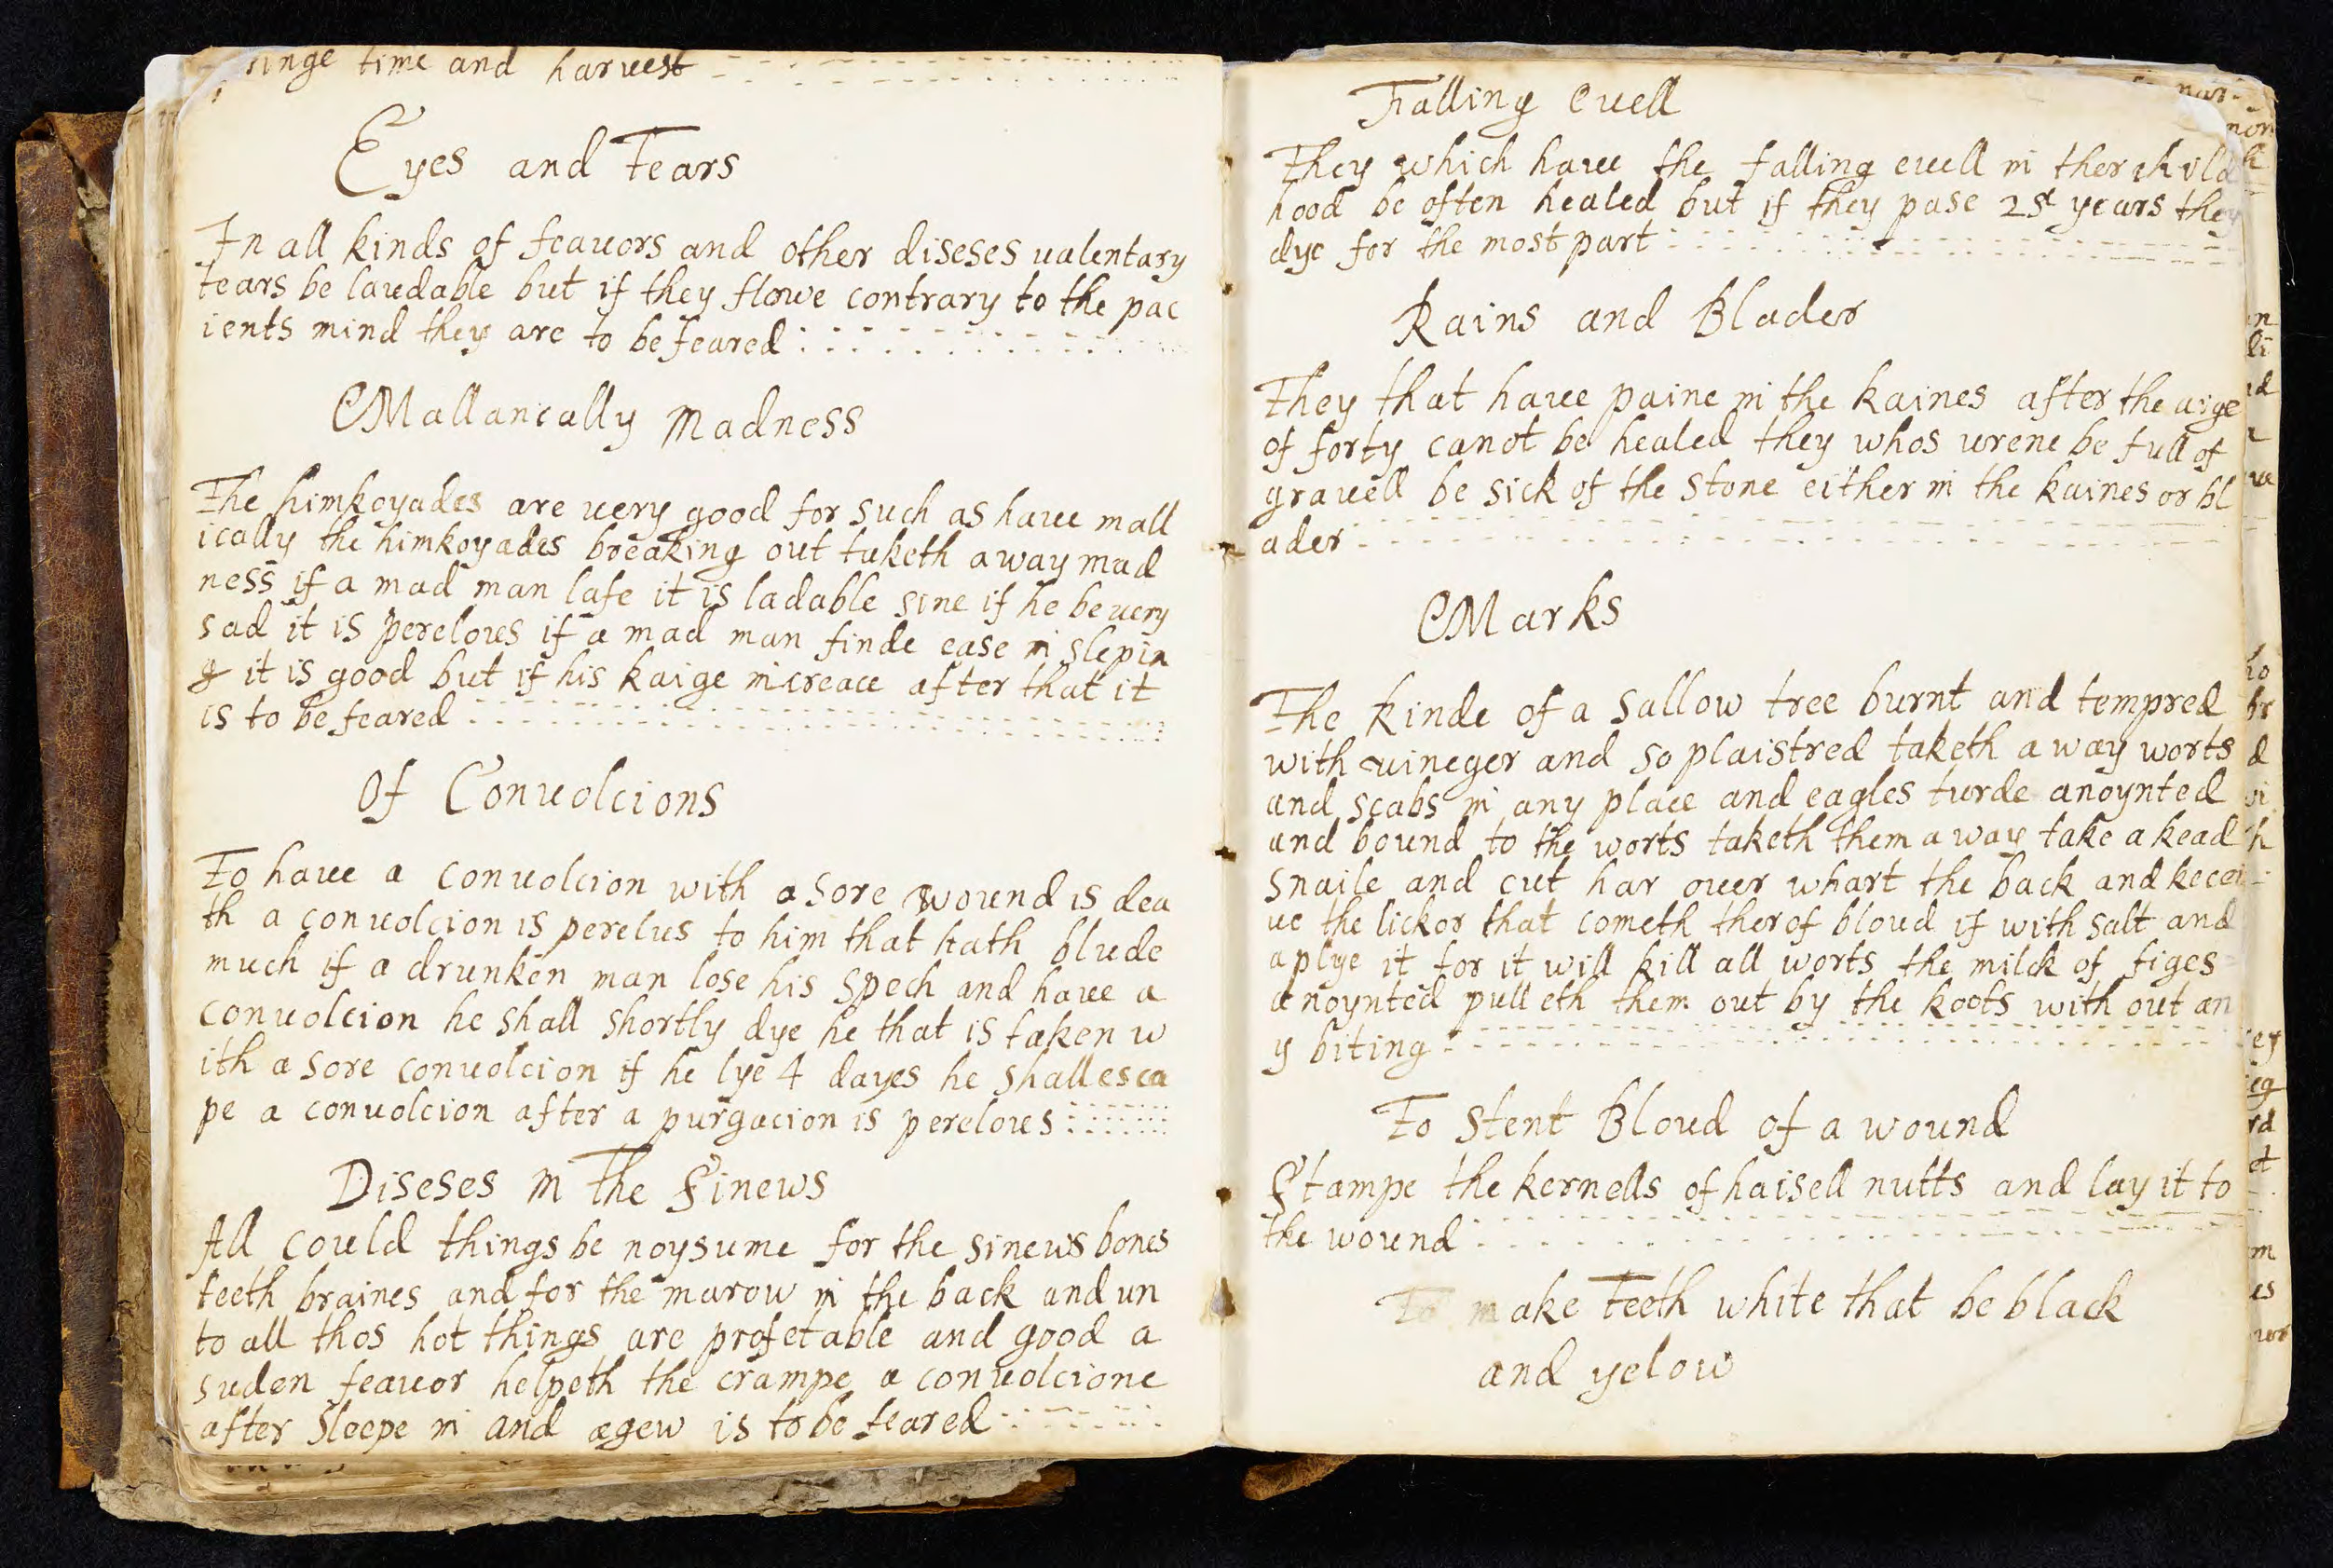 "Image of remedy using hazelnuts to stanch bleeding in Elizabeth Dyke, her Booke of Recaits 1668."" (MS D157)"